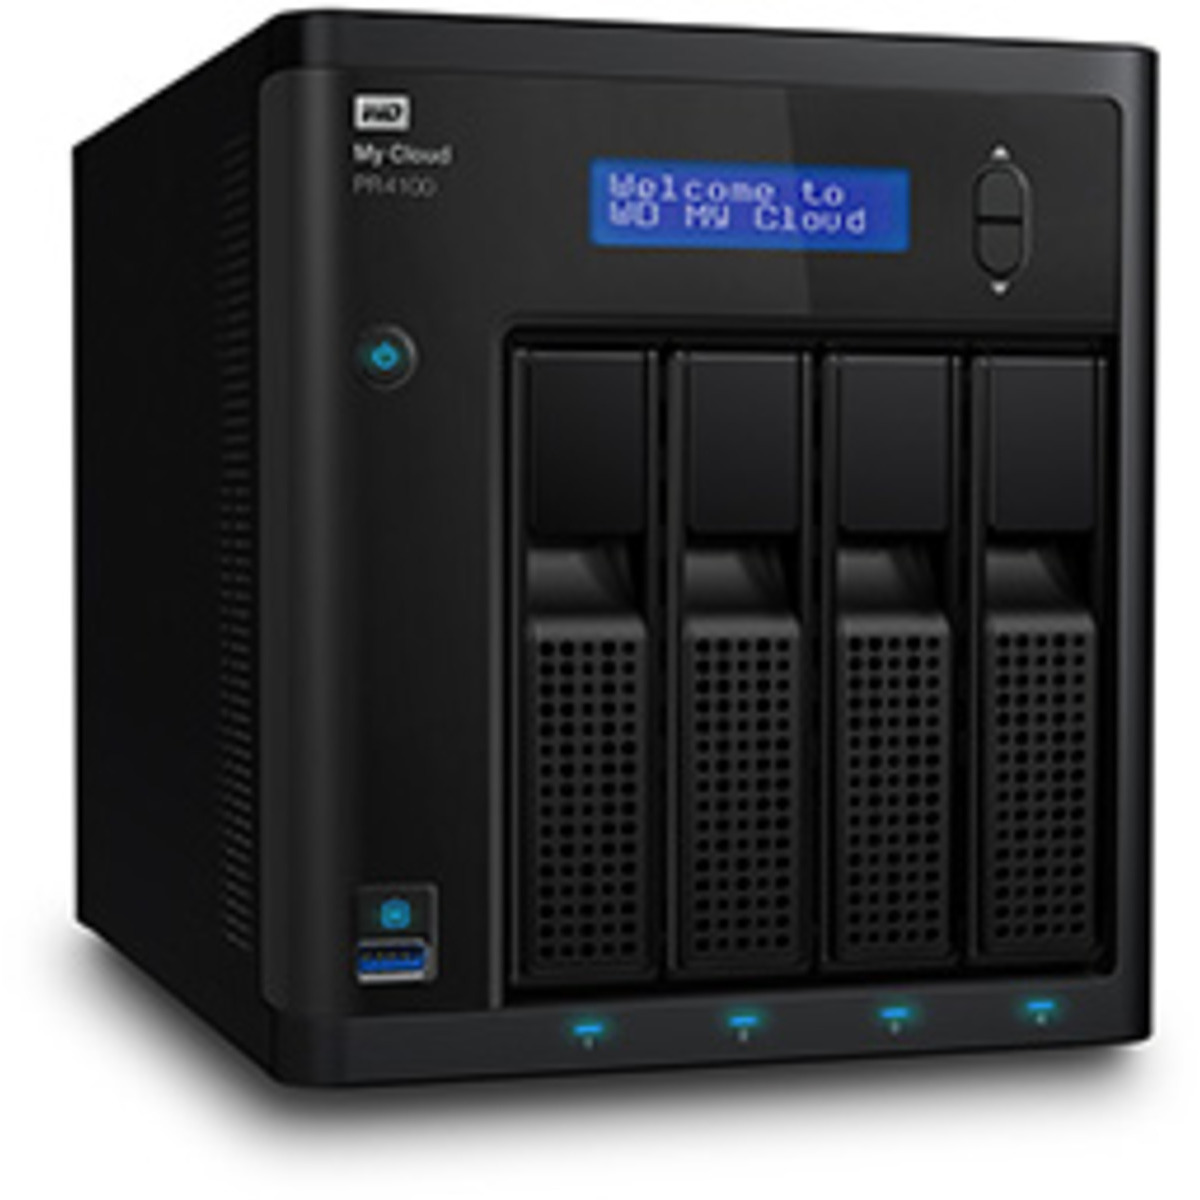 buy $1459 Western Digital My Cloud Pro PR4100 24tb Desktop NAS - Network Attached Storage Device 4x6000gb Western Digital Gold WD6003FRYZ 3.5 7200rpm SATA 6Gb/s HDD ENTERPRISE Class Drives Installed - Burn-In Tested - nas headquarters buy network attached storage server device das new raid-5 free shipping usa spring inventory clearance sale happening now My Cloud Pro PR4100